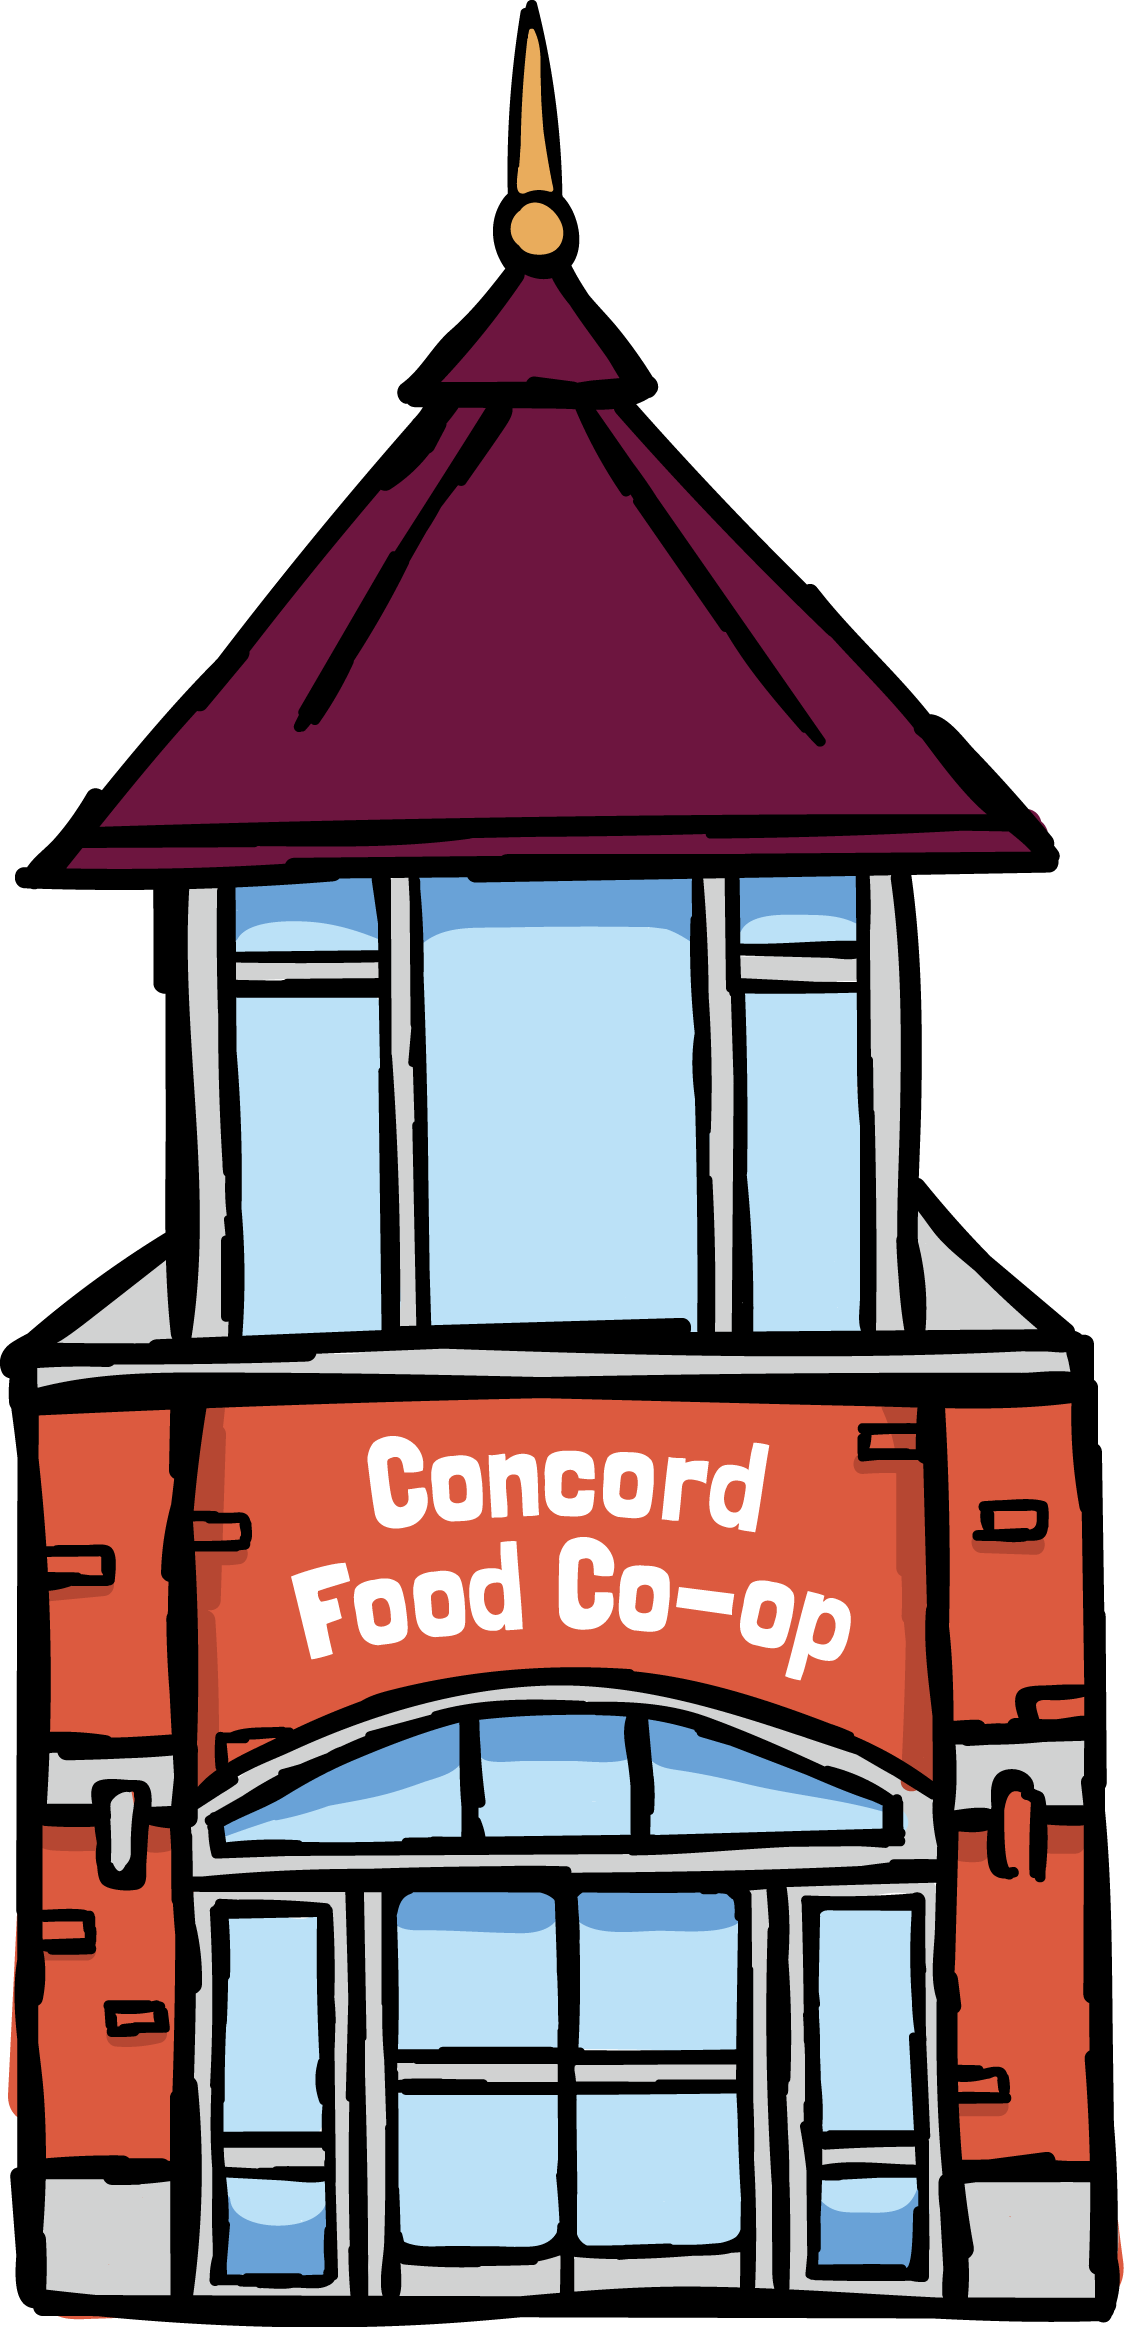 About concord food co. Men clipart grocery shopping